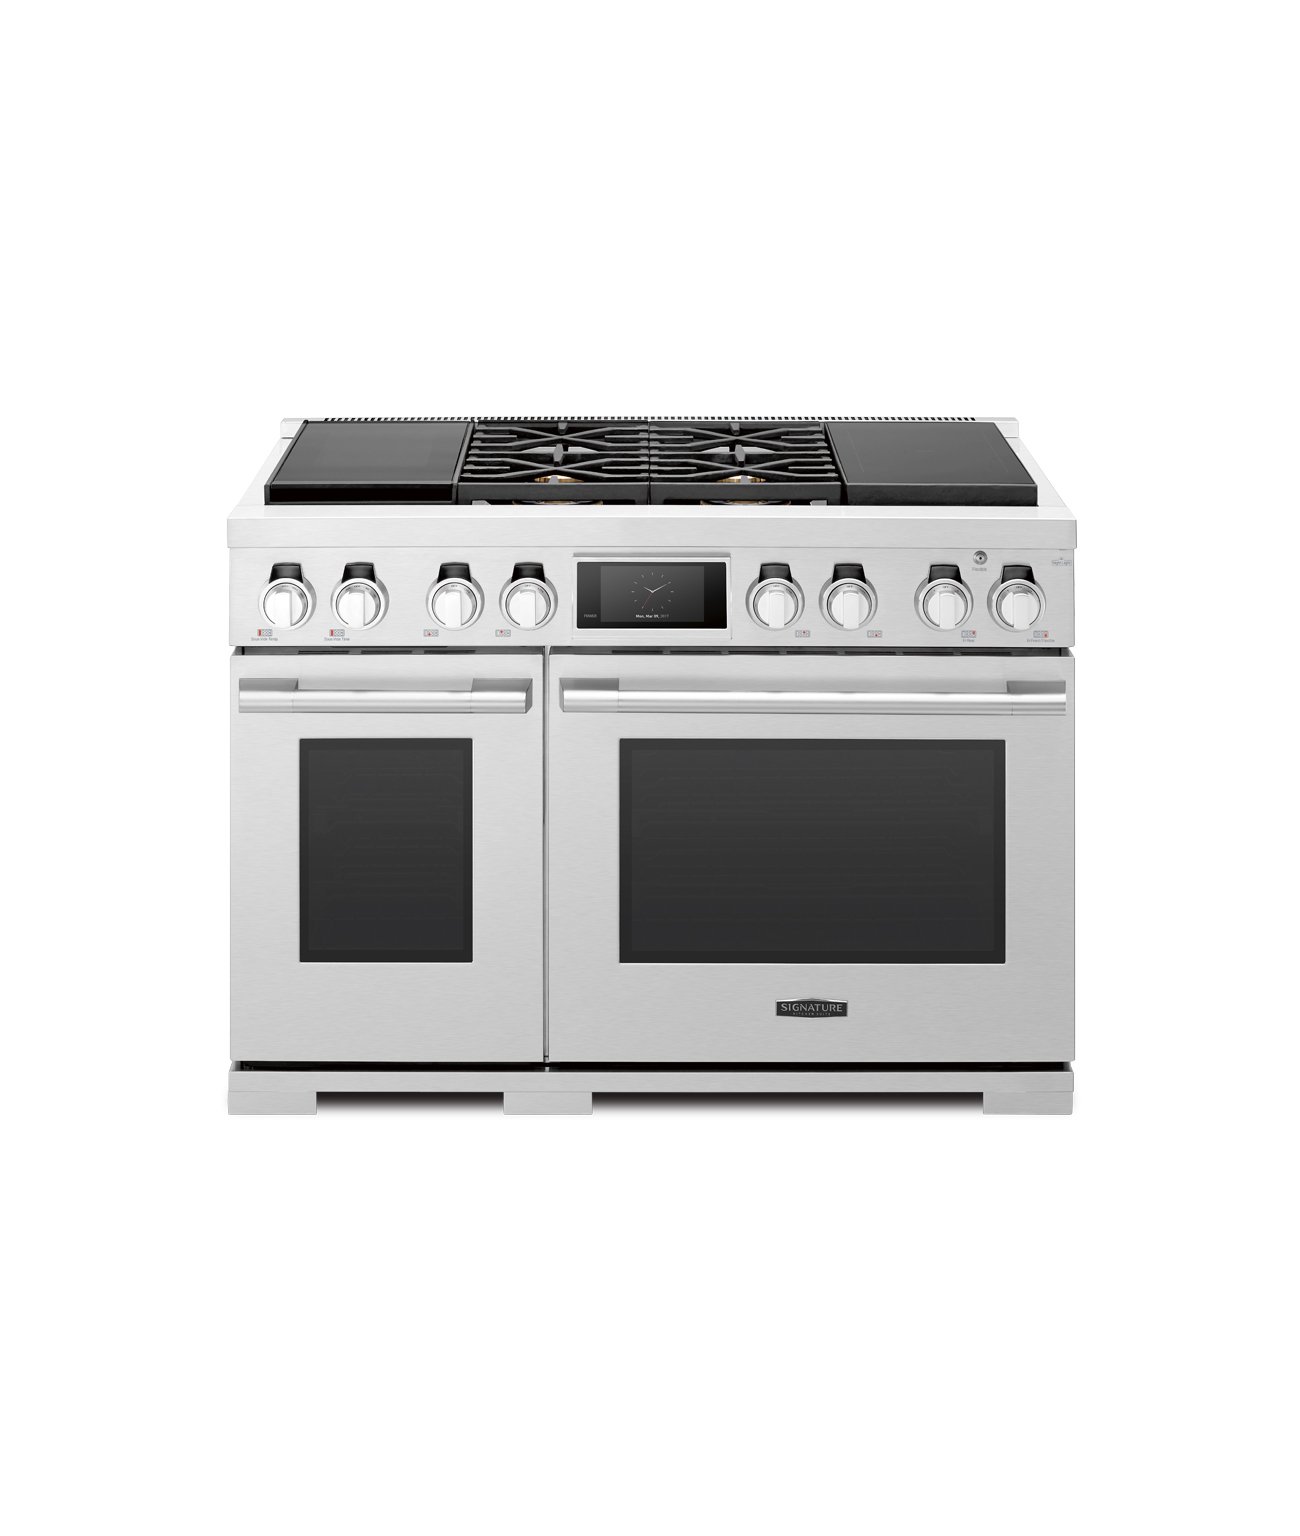 "48"" Dual Fuel Range with Sous Vide and induction"